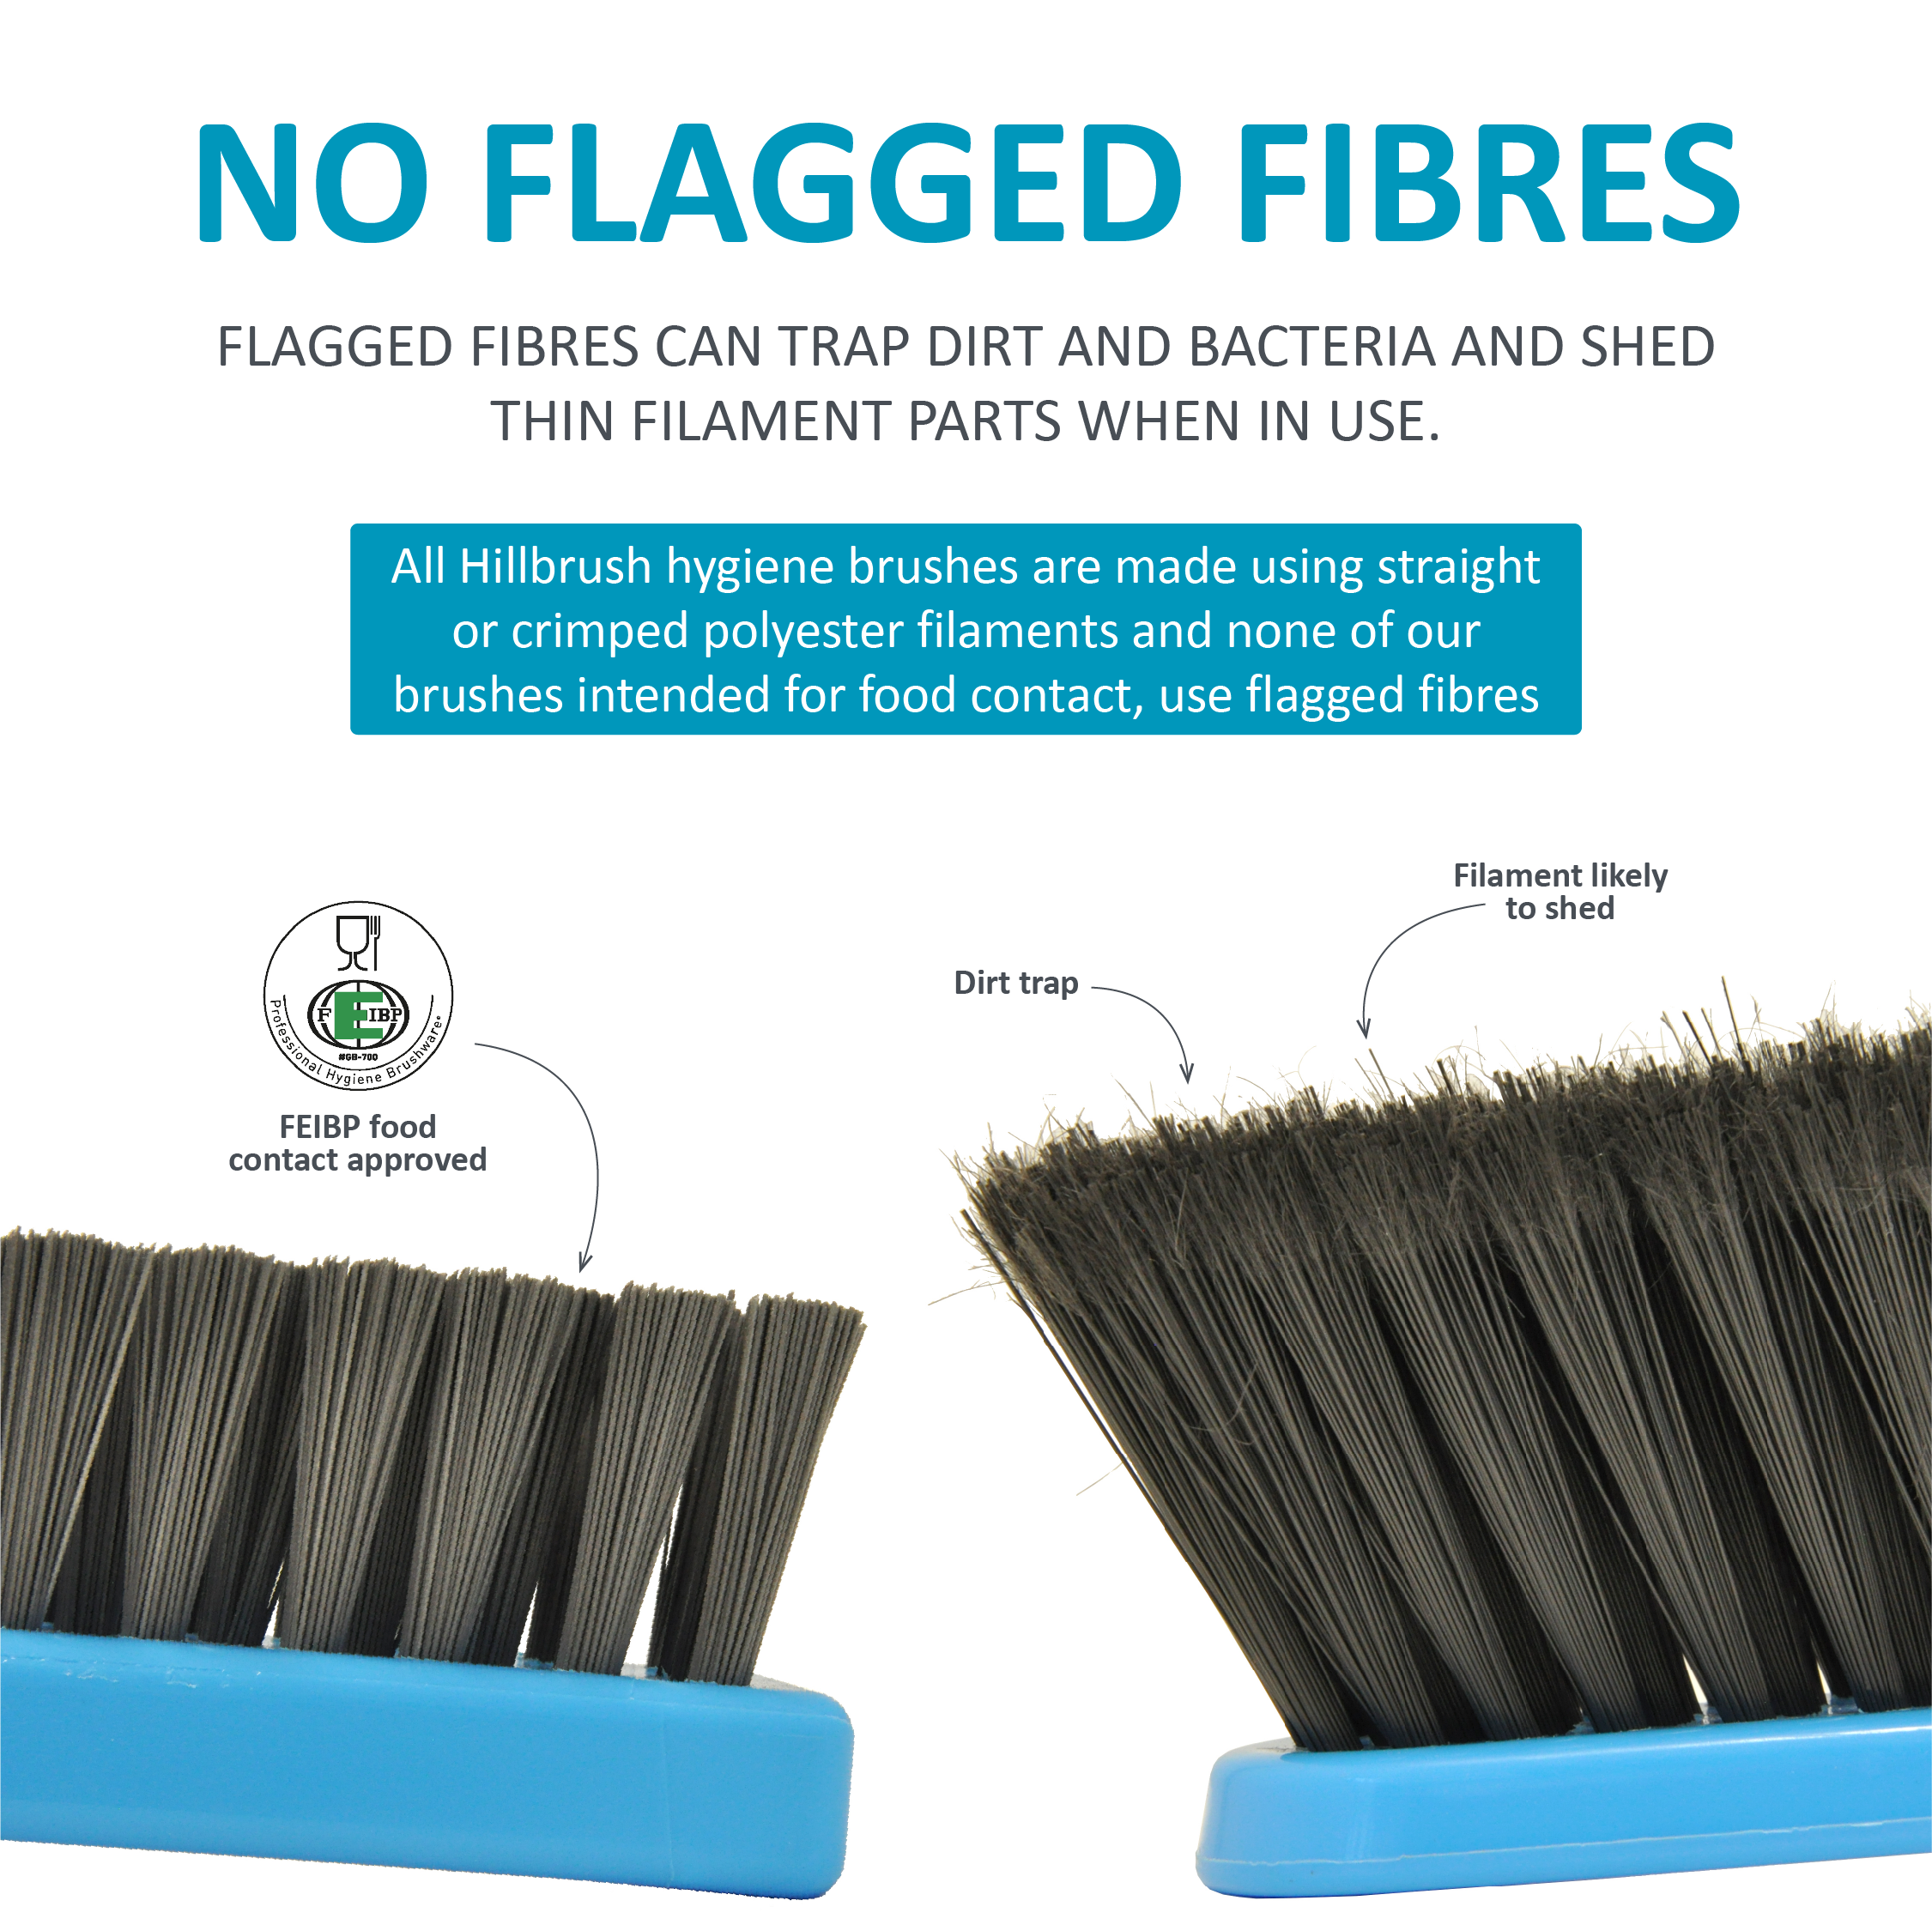 Comparison of two blue brushes, one brush with solid fibres and annotations of the FEIBP logo and suitable for food contact, one brush with flagged fibres and annotations saying dirt trap and filament likely to shed. Title says no flagged fibres and short description suggesting flagged fibres can trap bacteria.